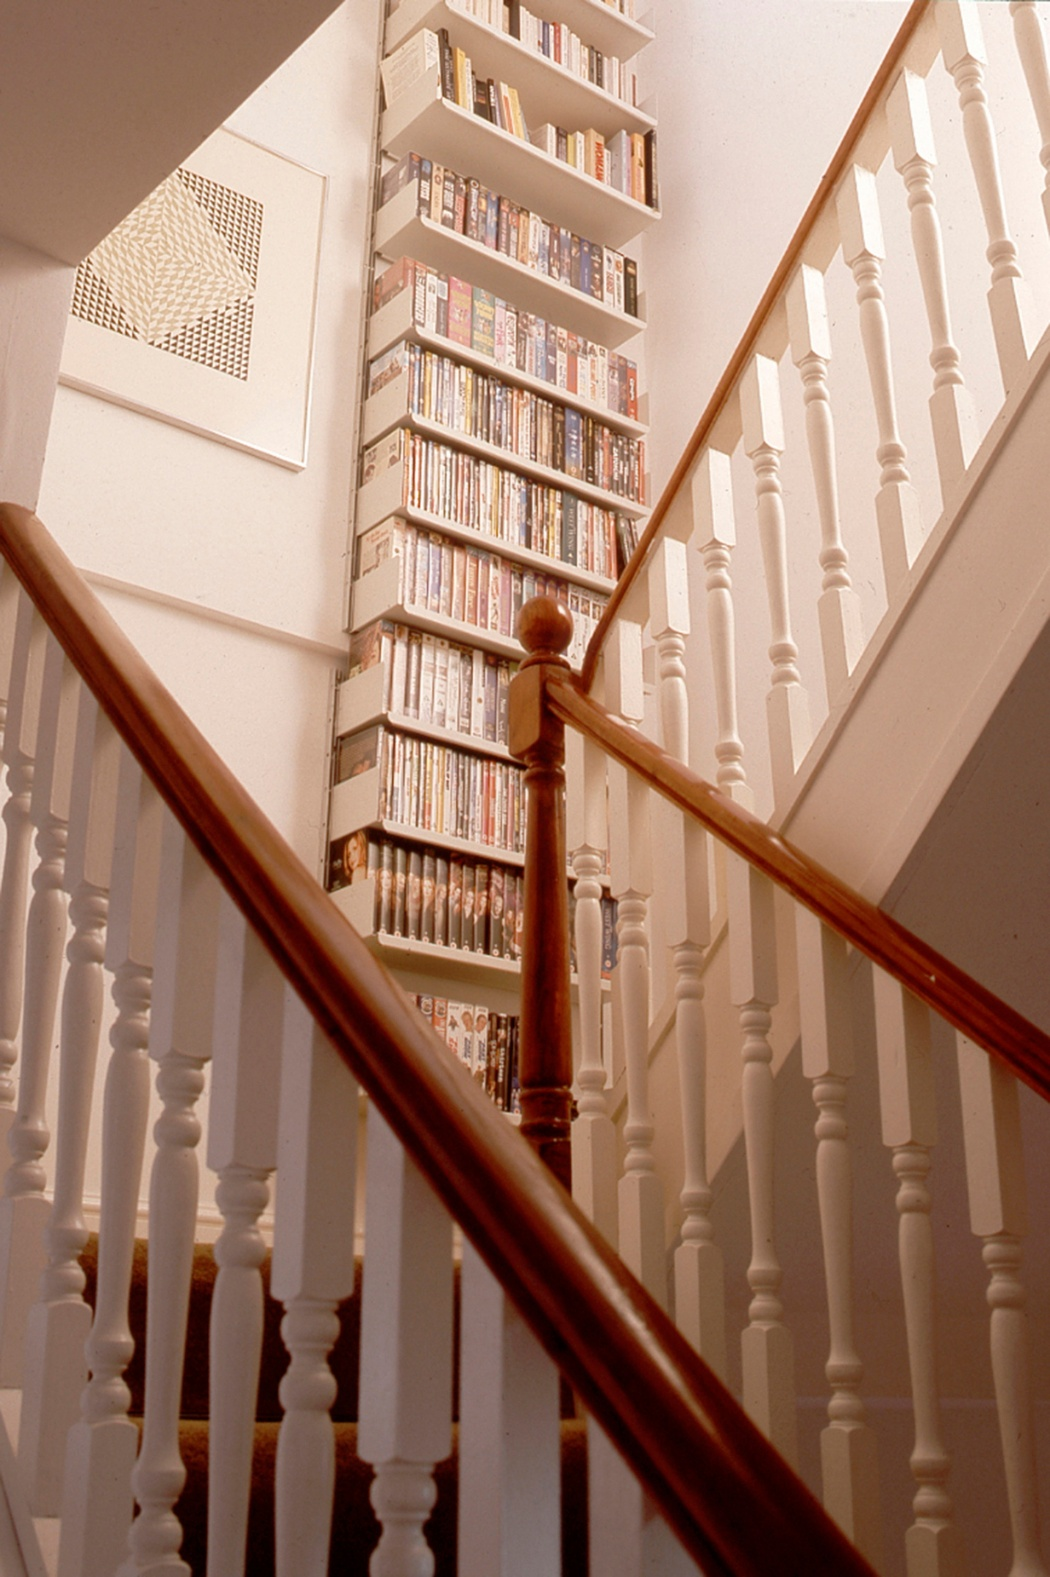 Staircase shelving on a stepped wall is accommodated using split E-Tracks